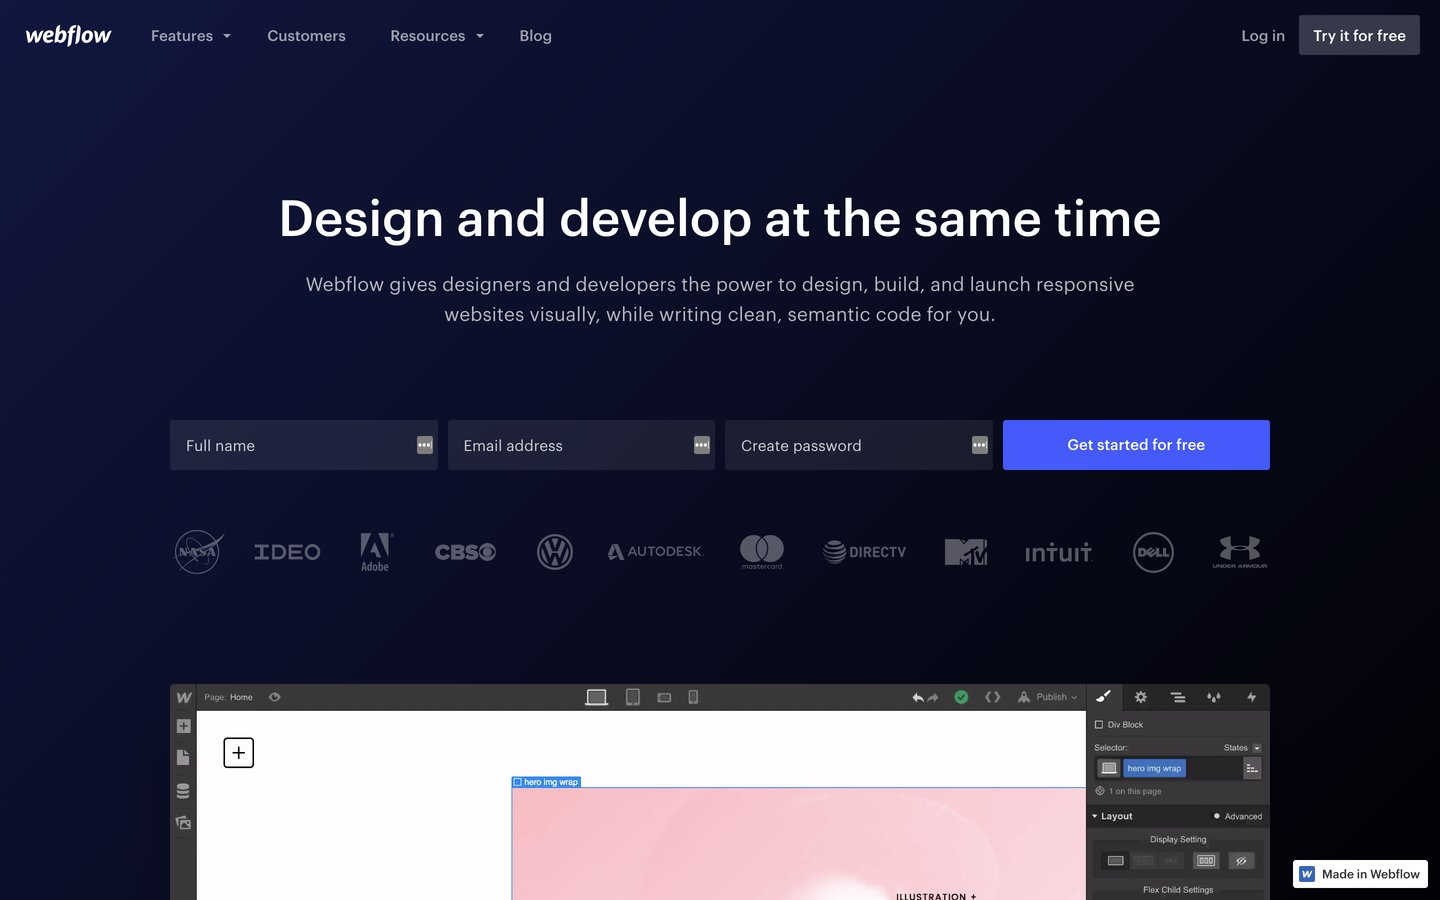 Webflow: Responsive web design tool, CMS, and hosting platform